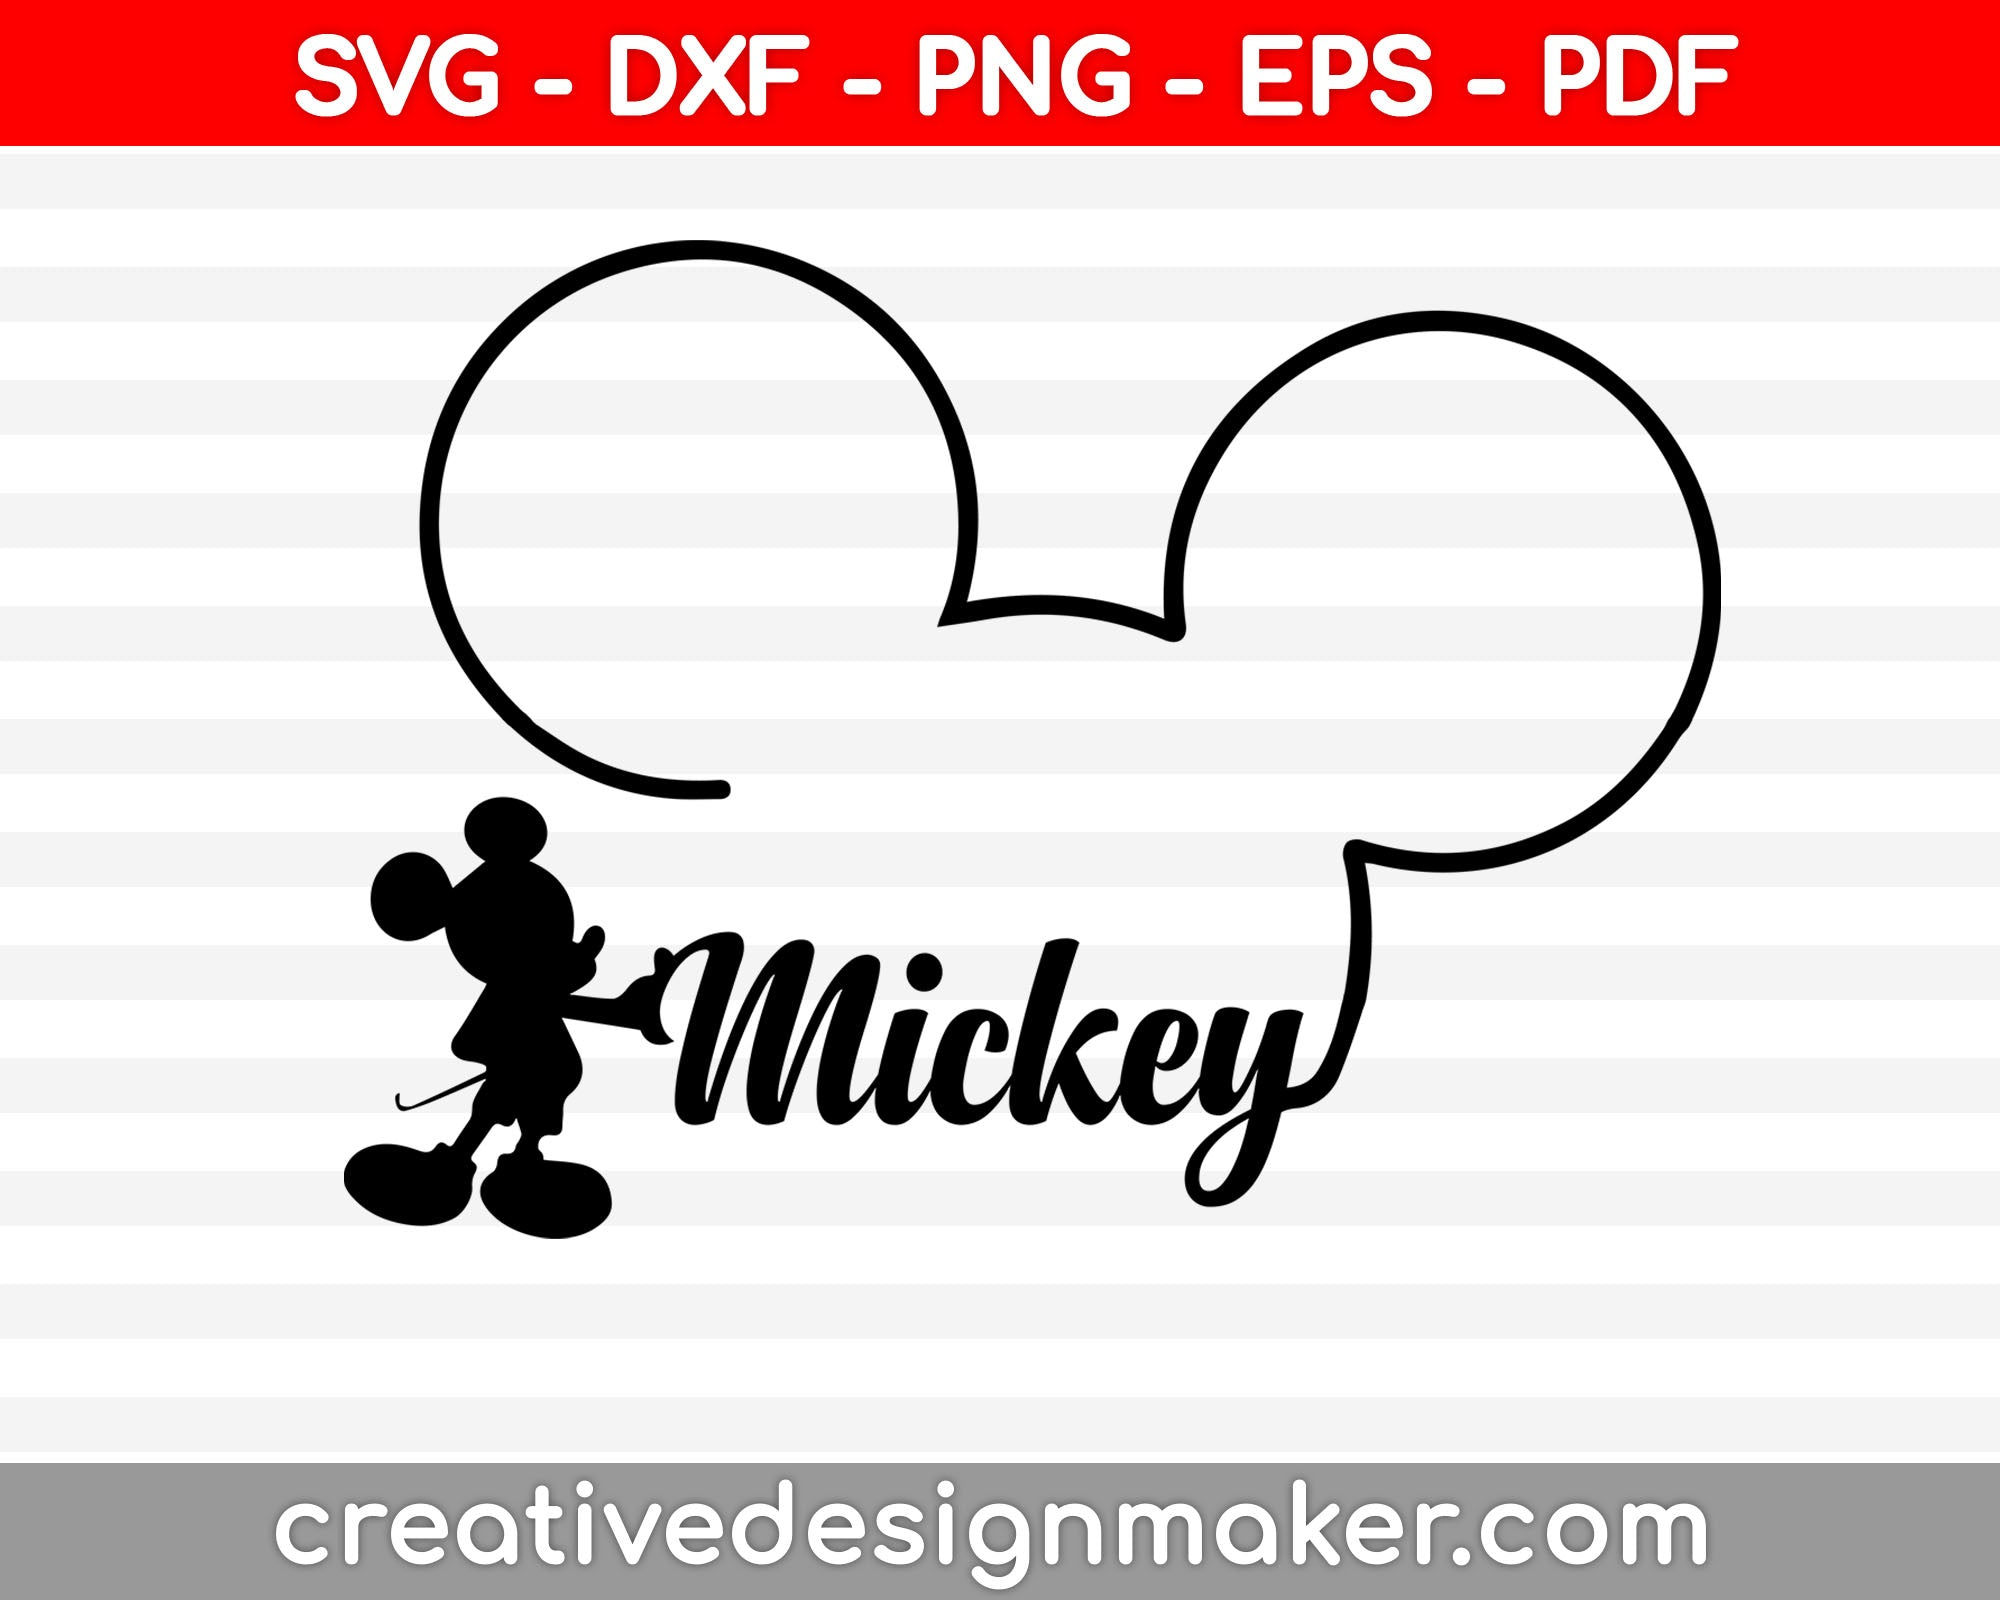 Mickey svg dxf png eps pdf File For Cameo And Printable Files